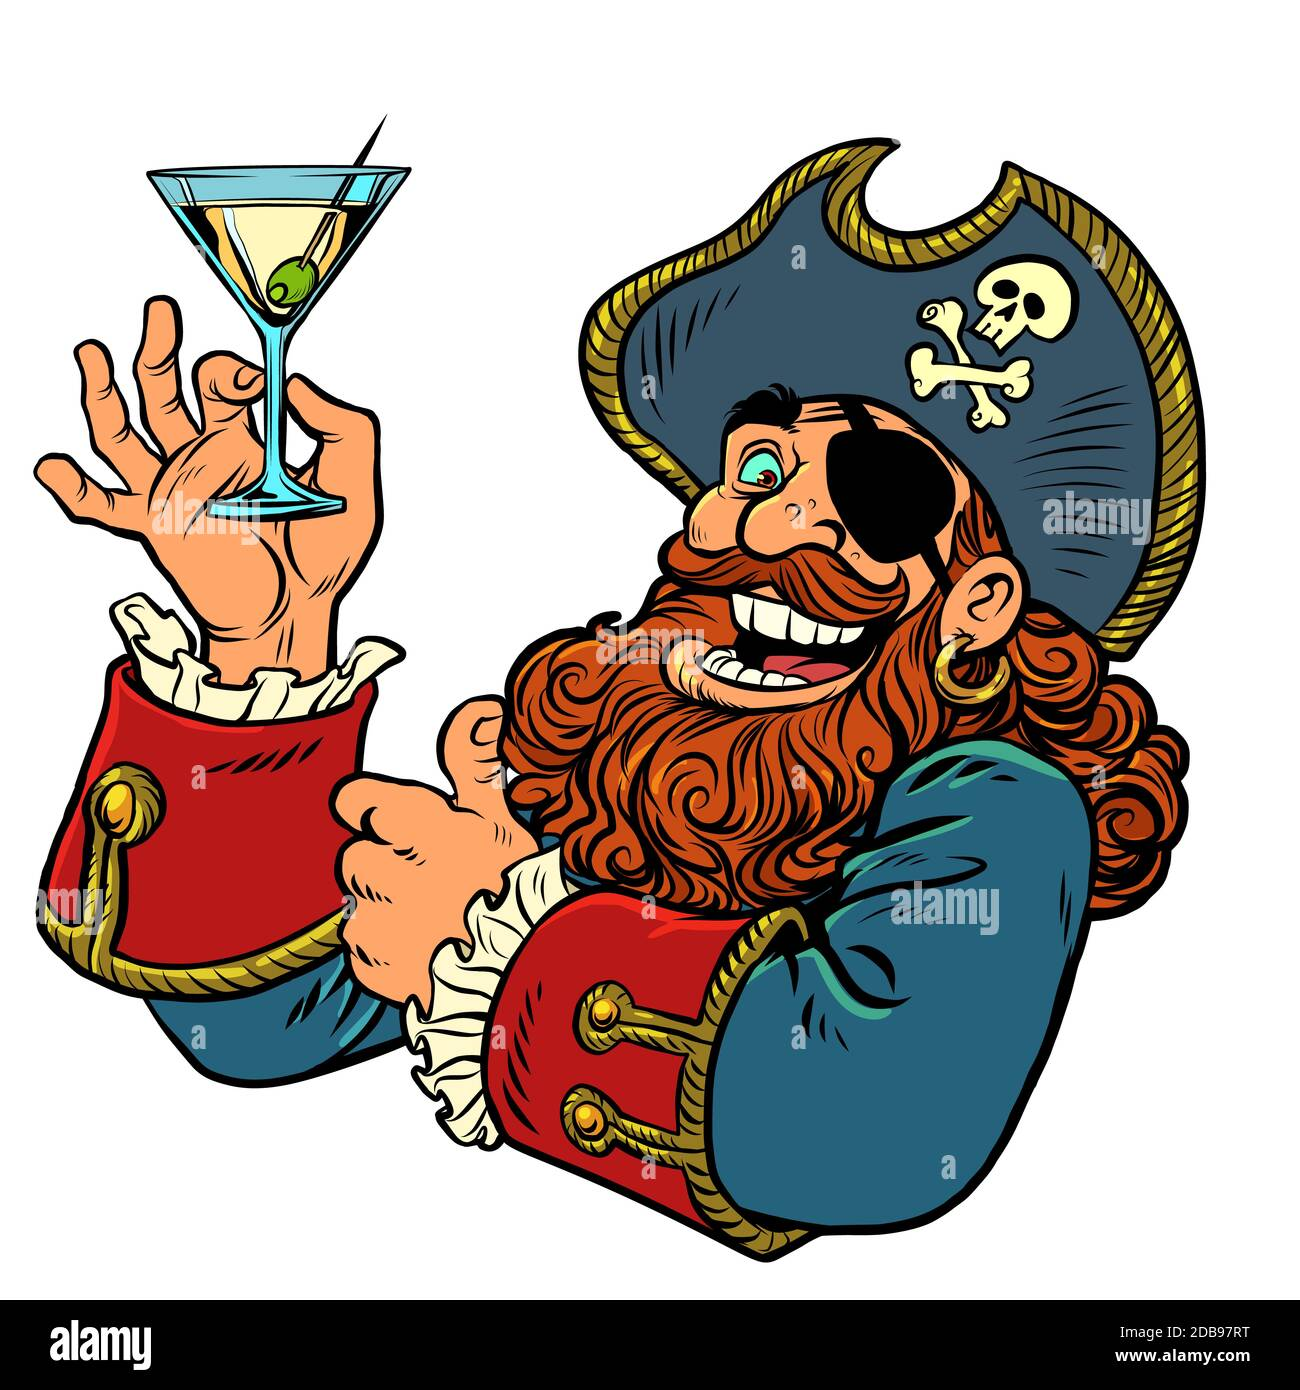 pirate funny character. alcoholic cocktail. Comics caricature pop art retro illustration drawing Stock Photo